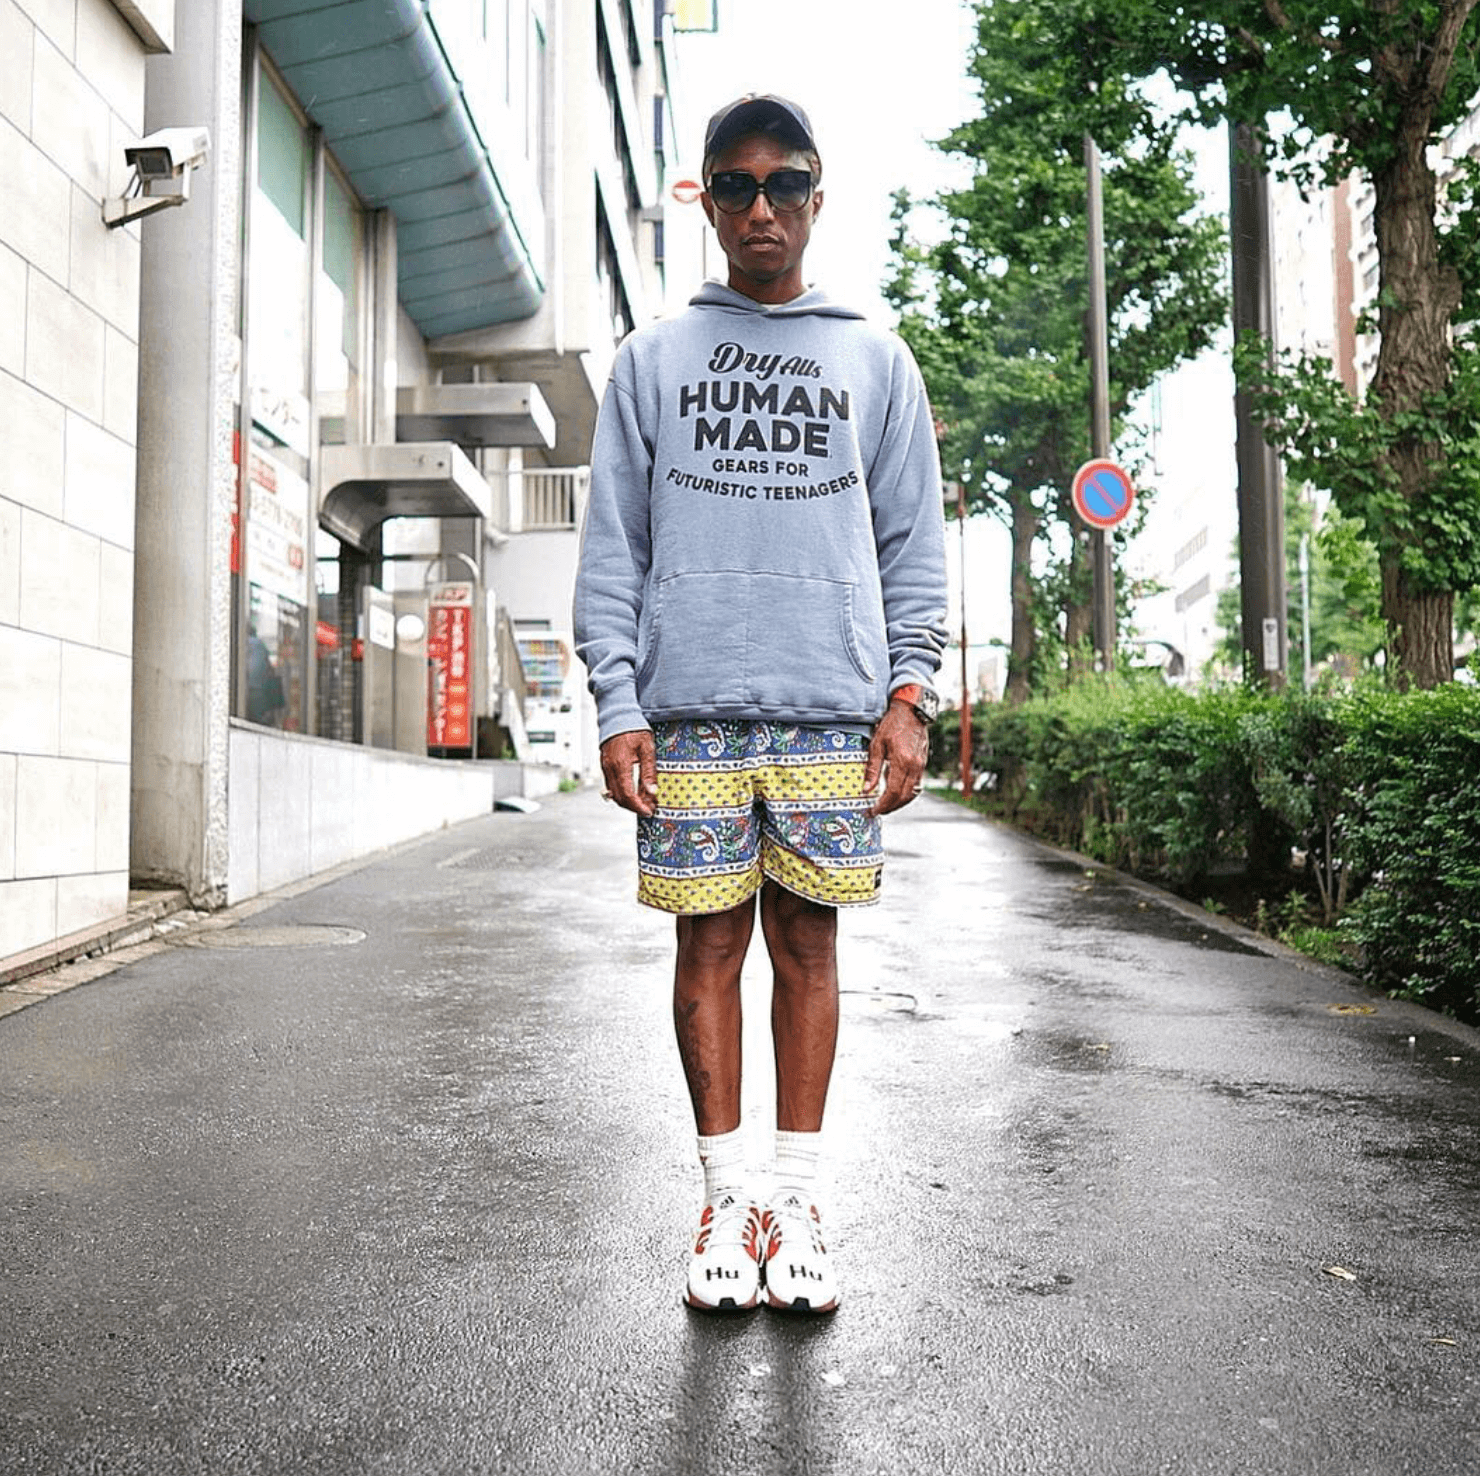 Pharrell in the adidas Solar Hu Glide ST